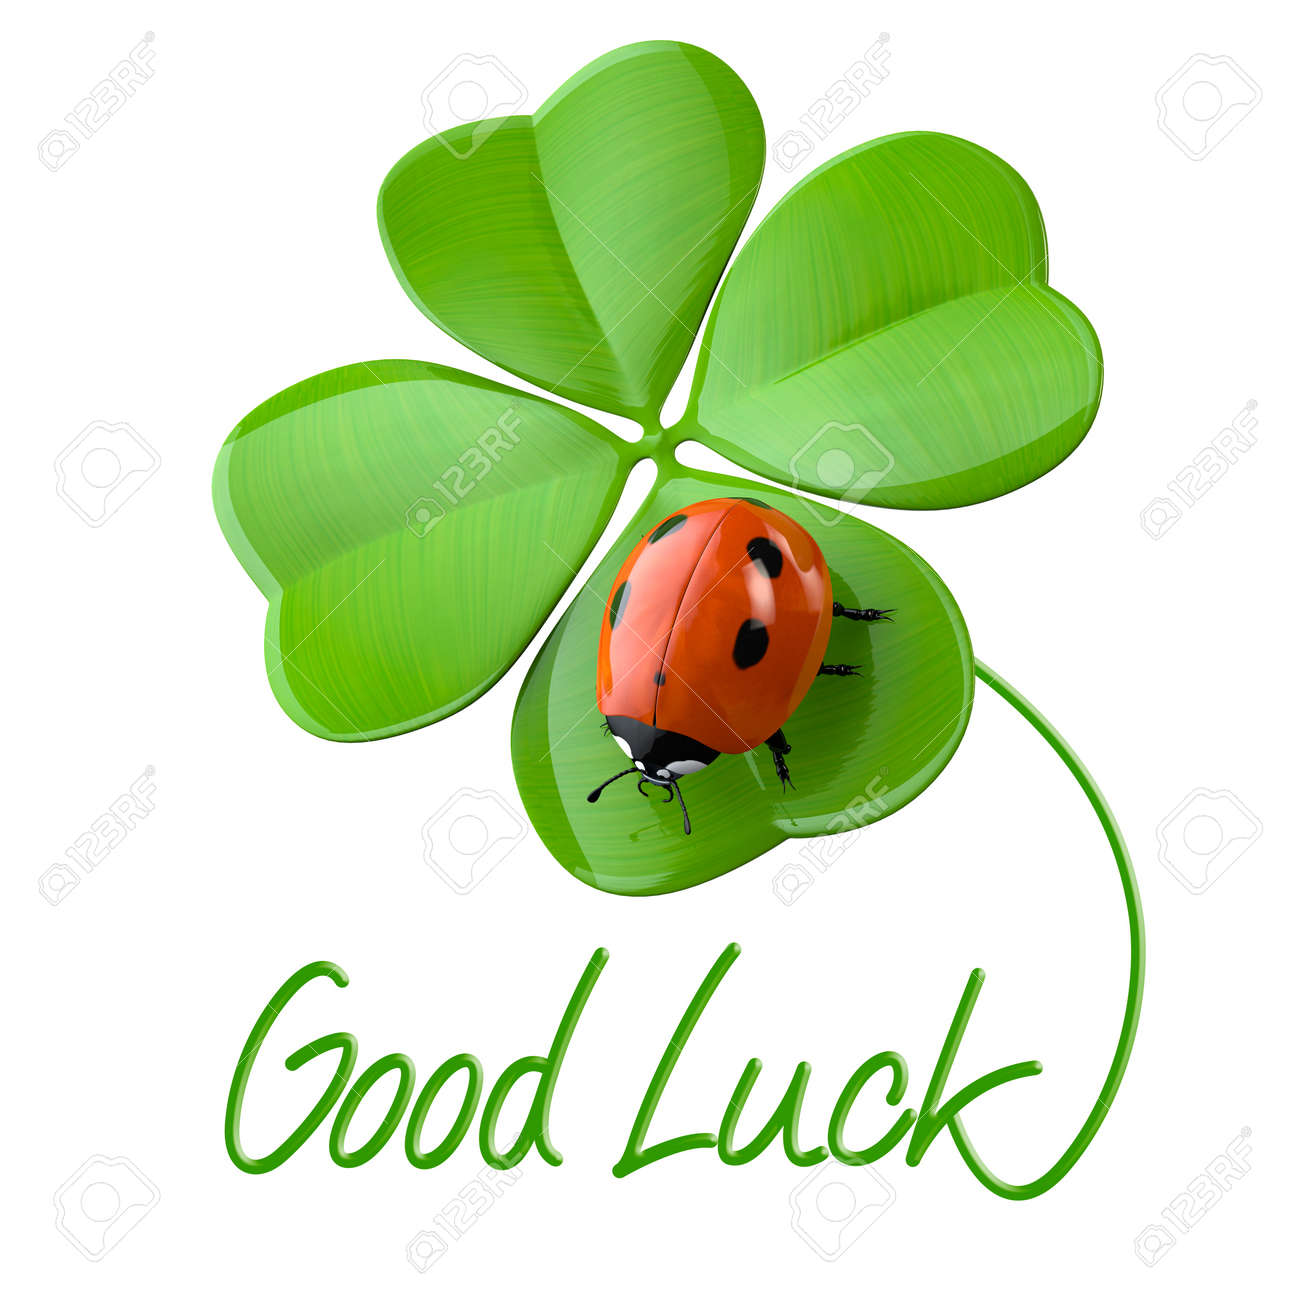 Lucky Symbols Four Leaf Clover And Ladybug Stock Photo